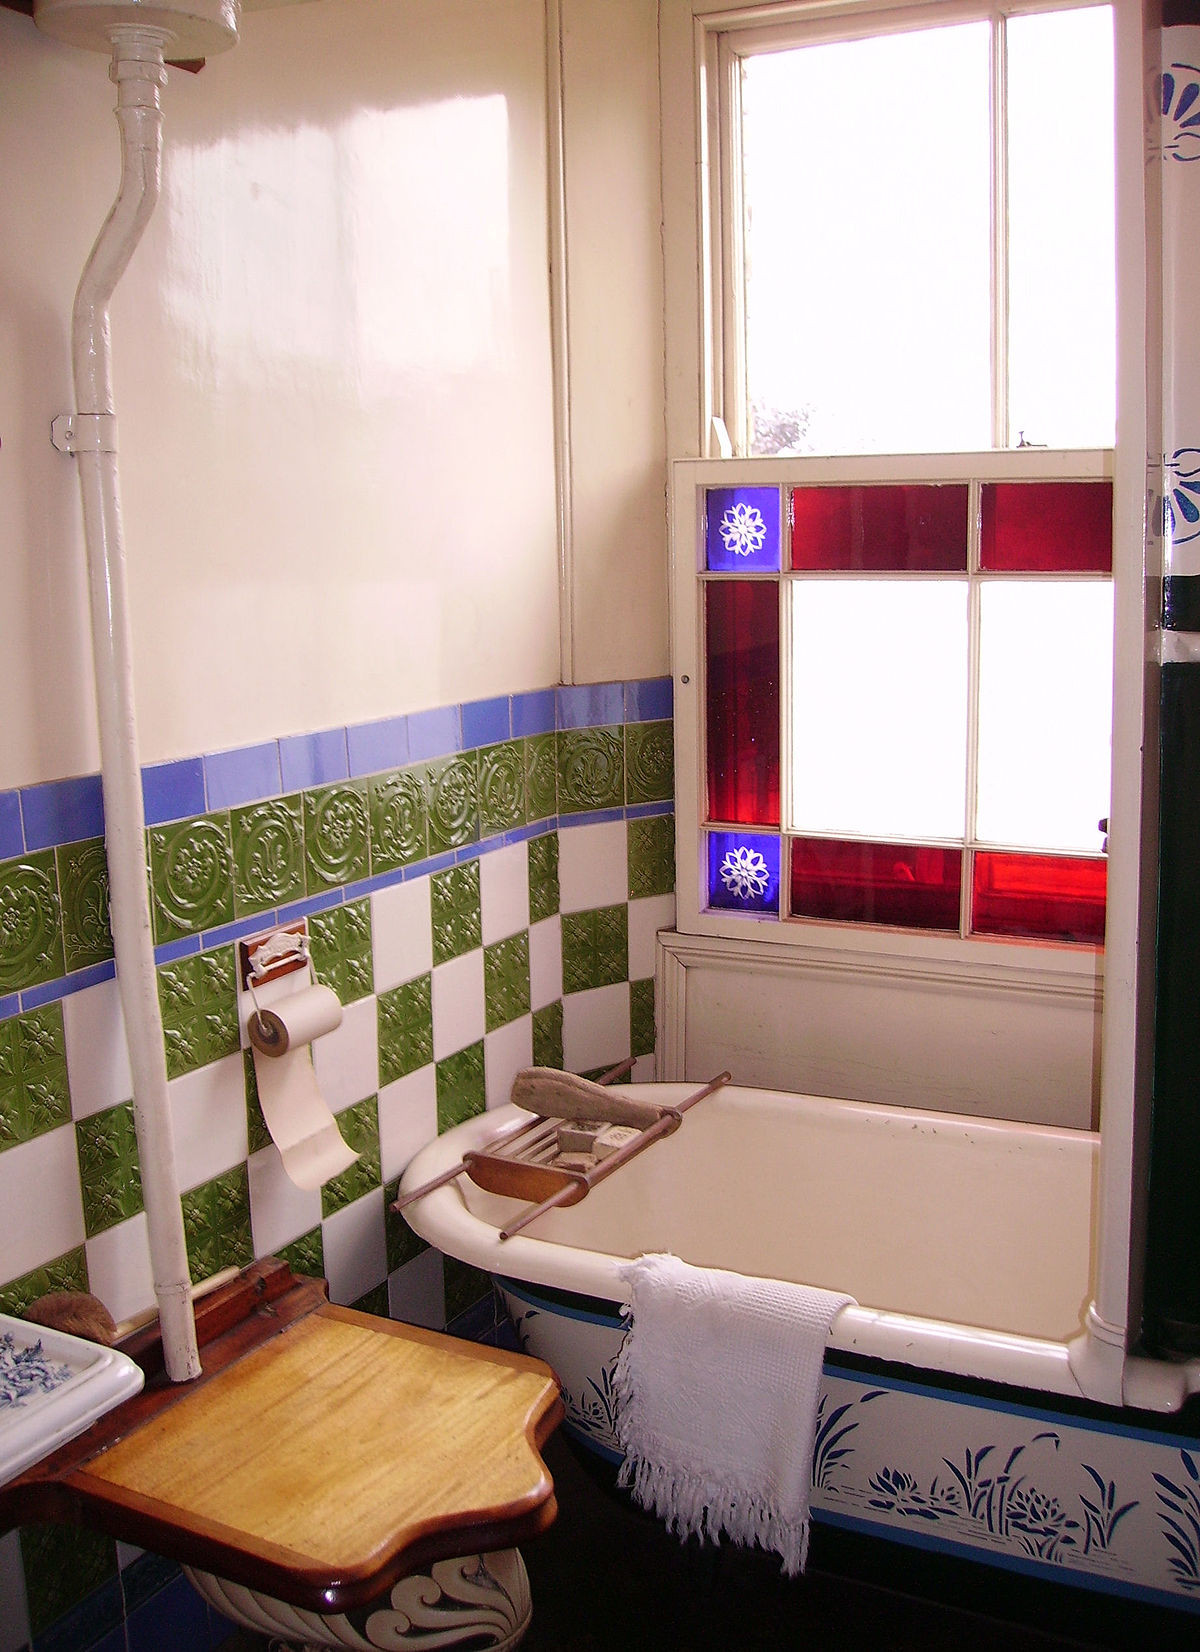 Best ideas about Pictures For Bathroom . Save or Pin bathroom Wiktionary Now.